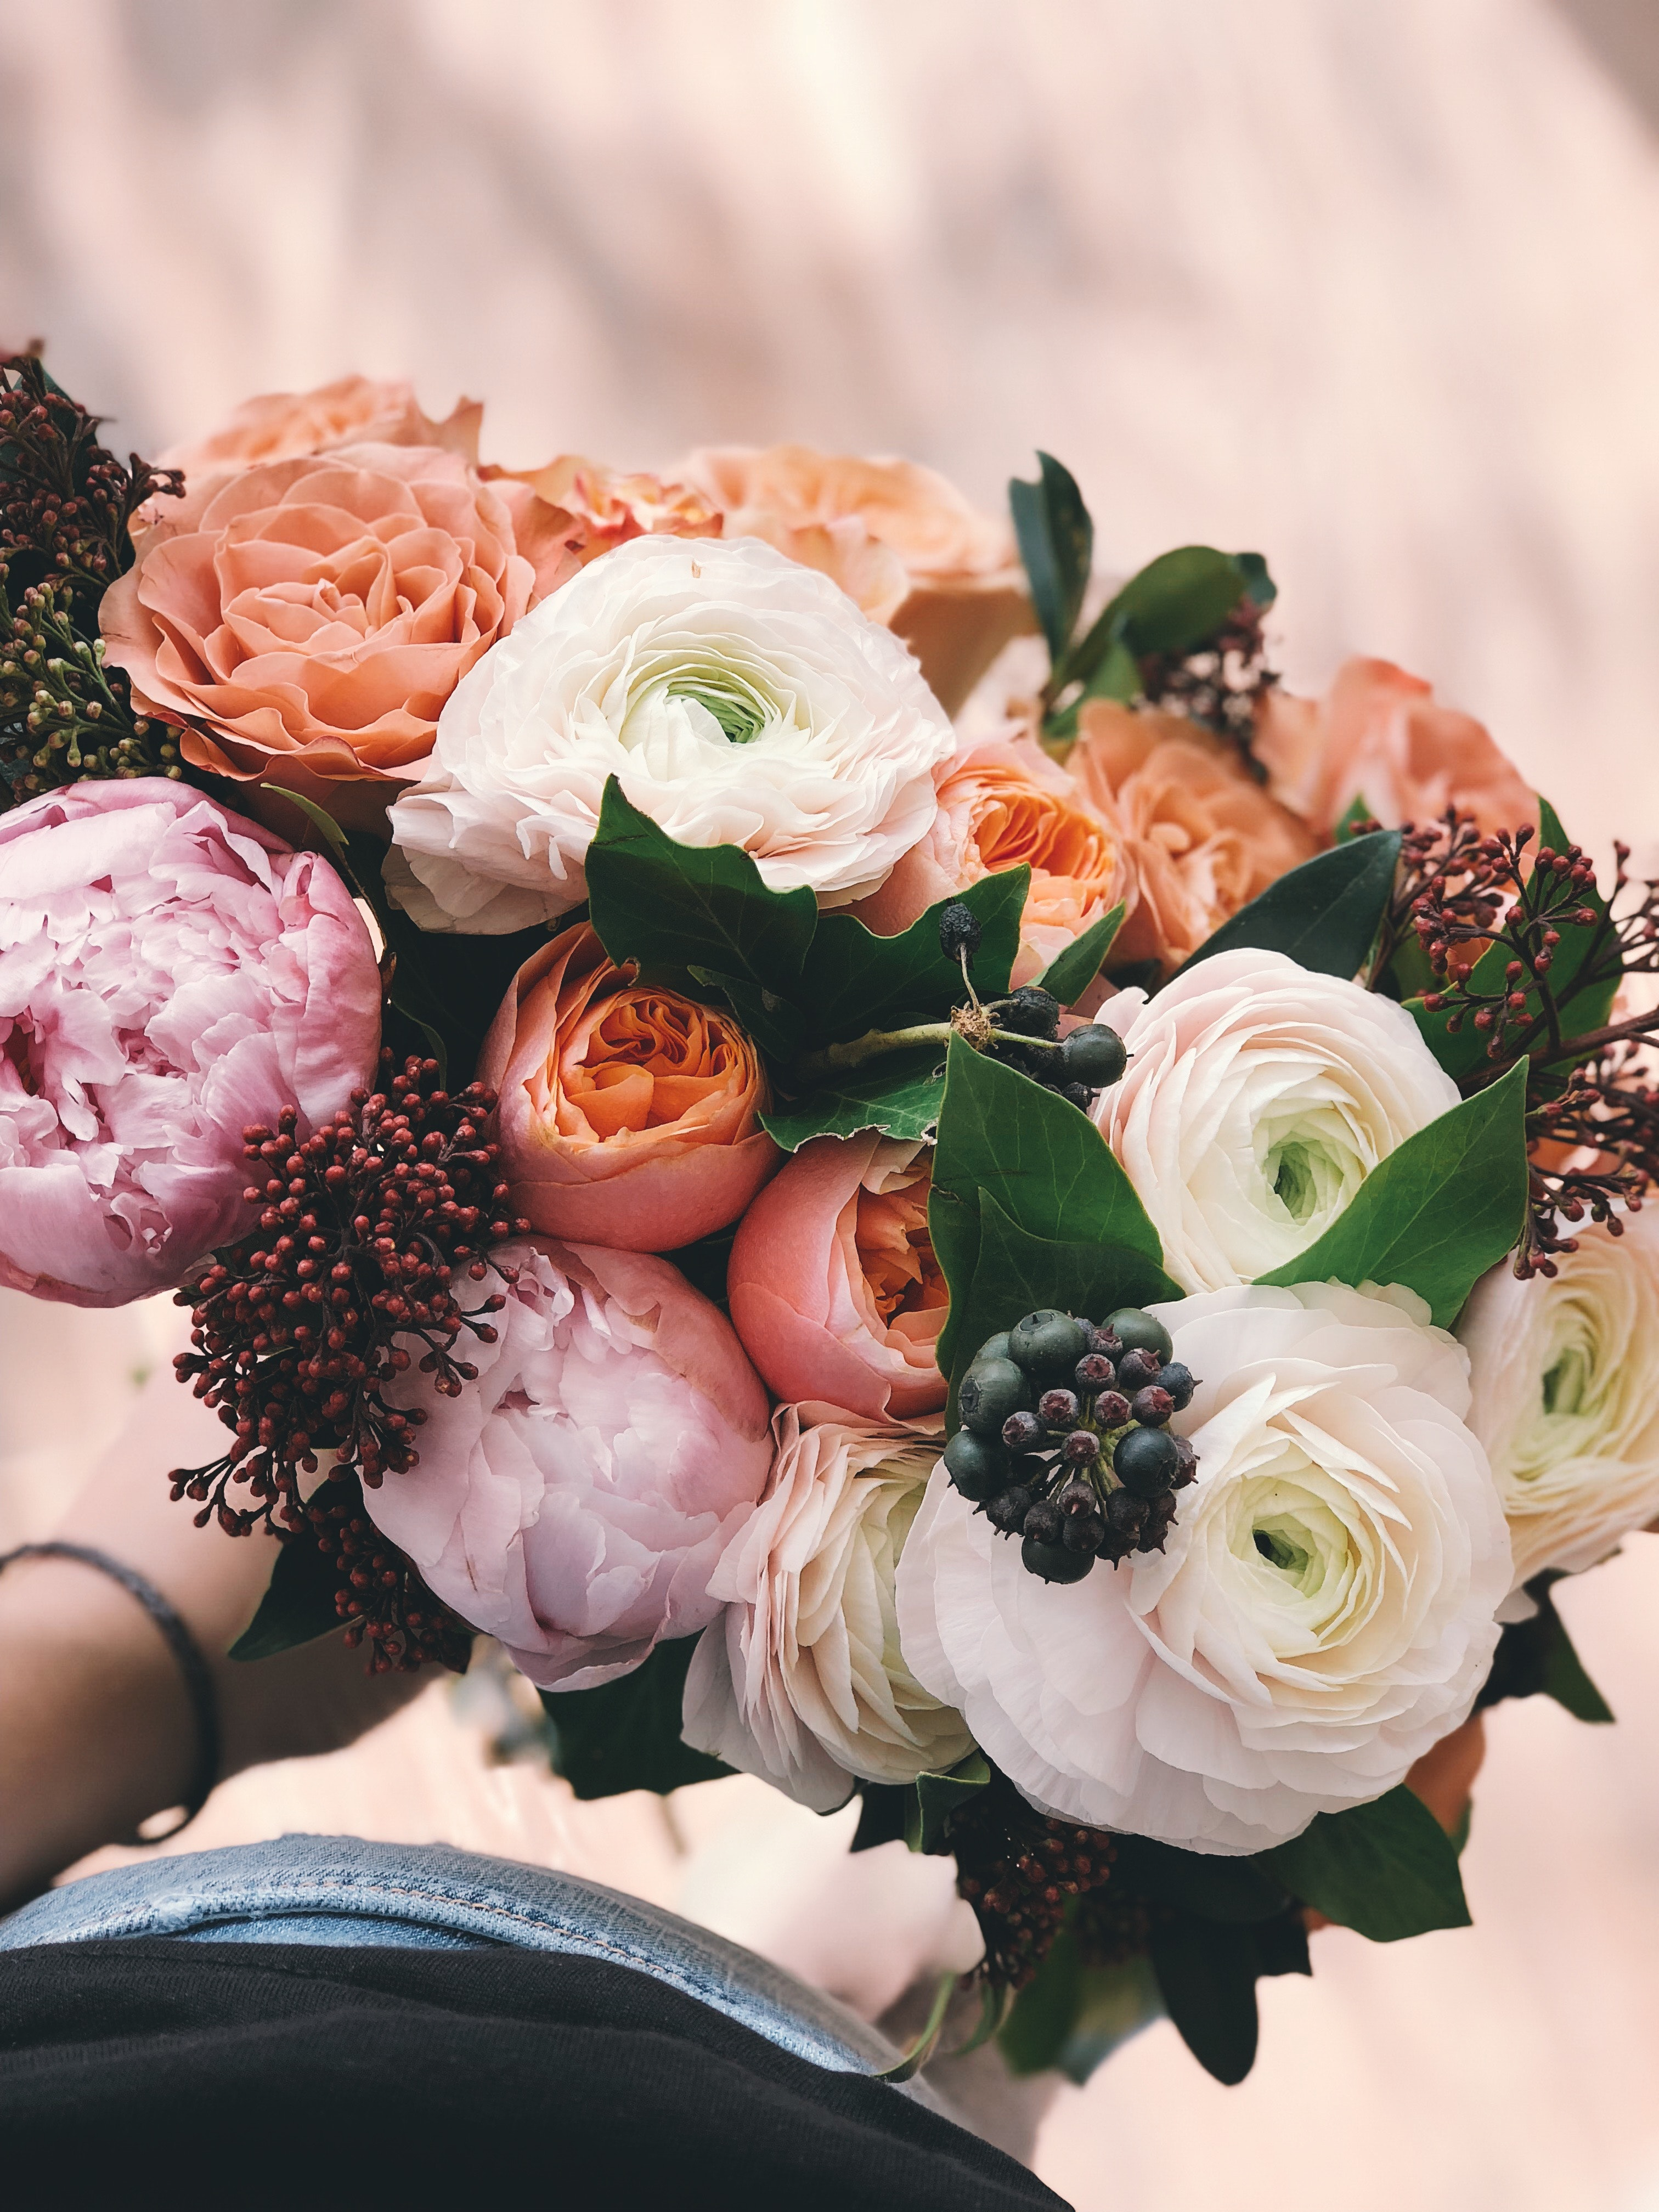 White, pink, and orange rose bouquet photo